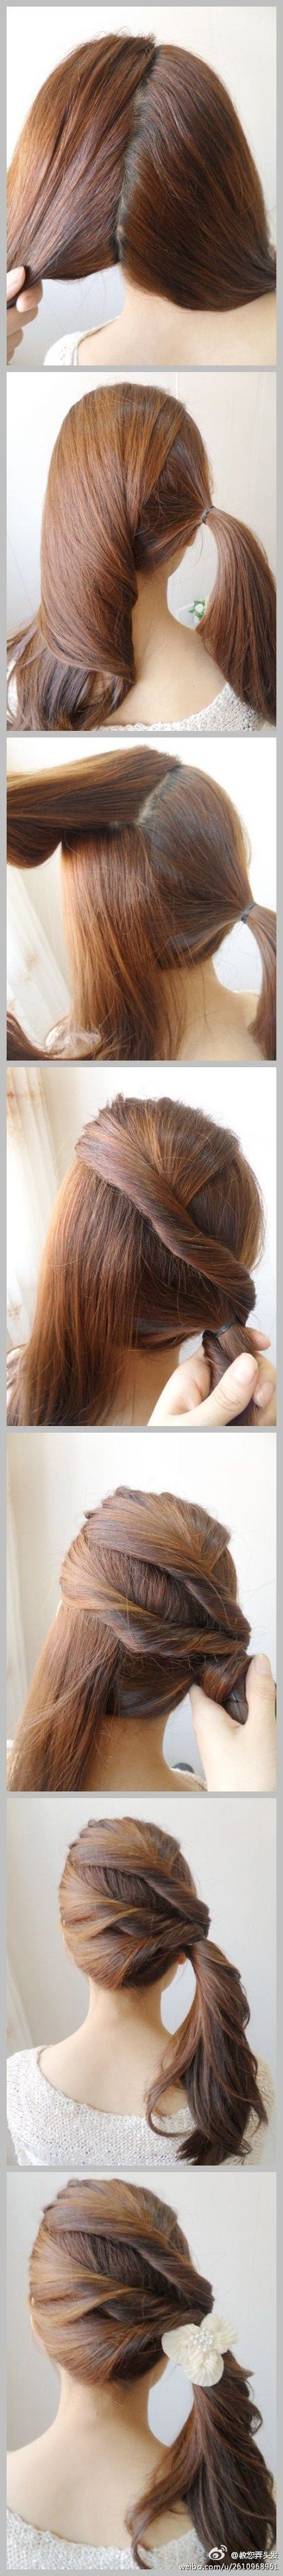 Latest Party Hairstyles Tutorial Step by Step with Pictures2015-2016 (28)